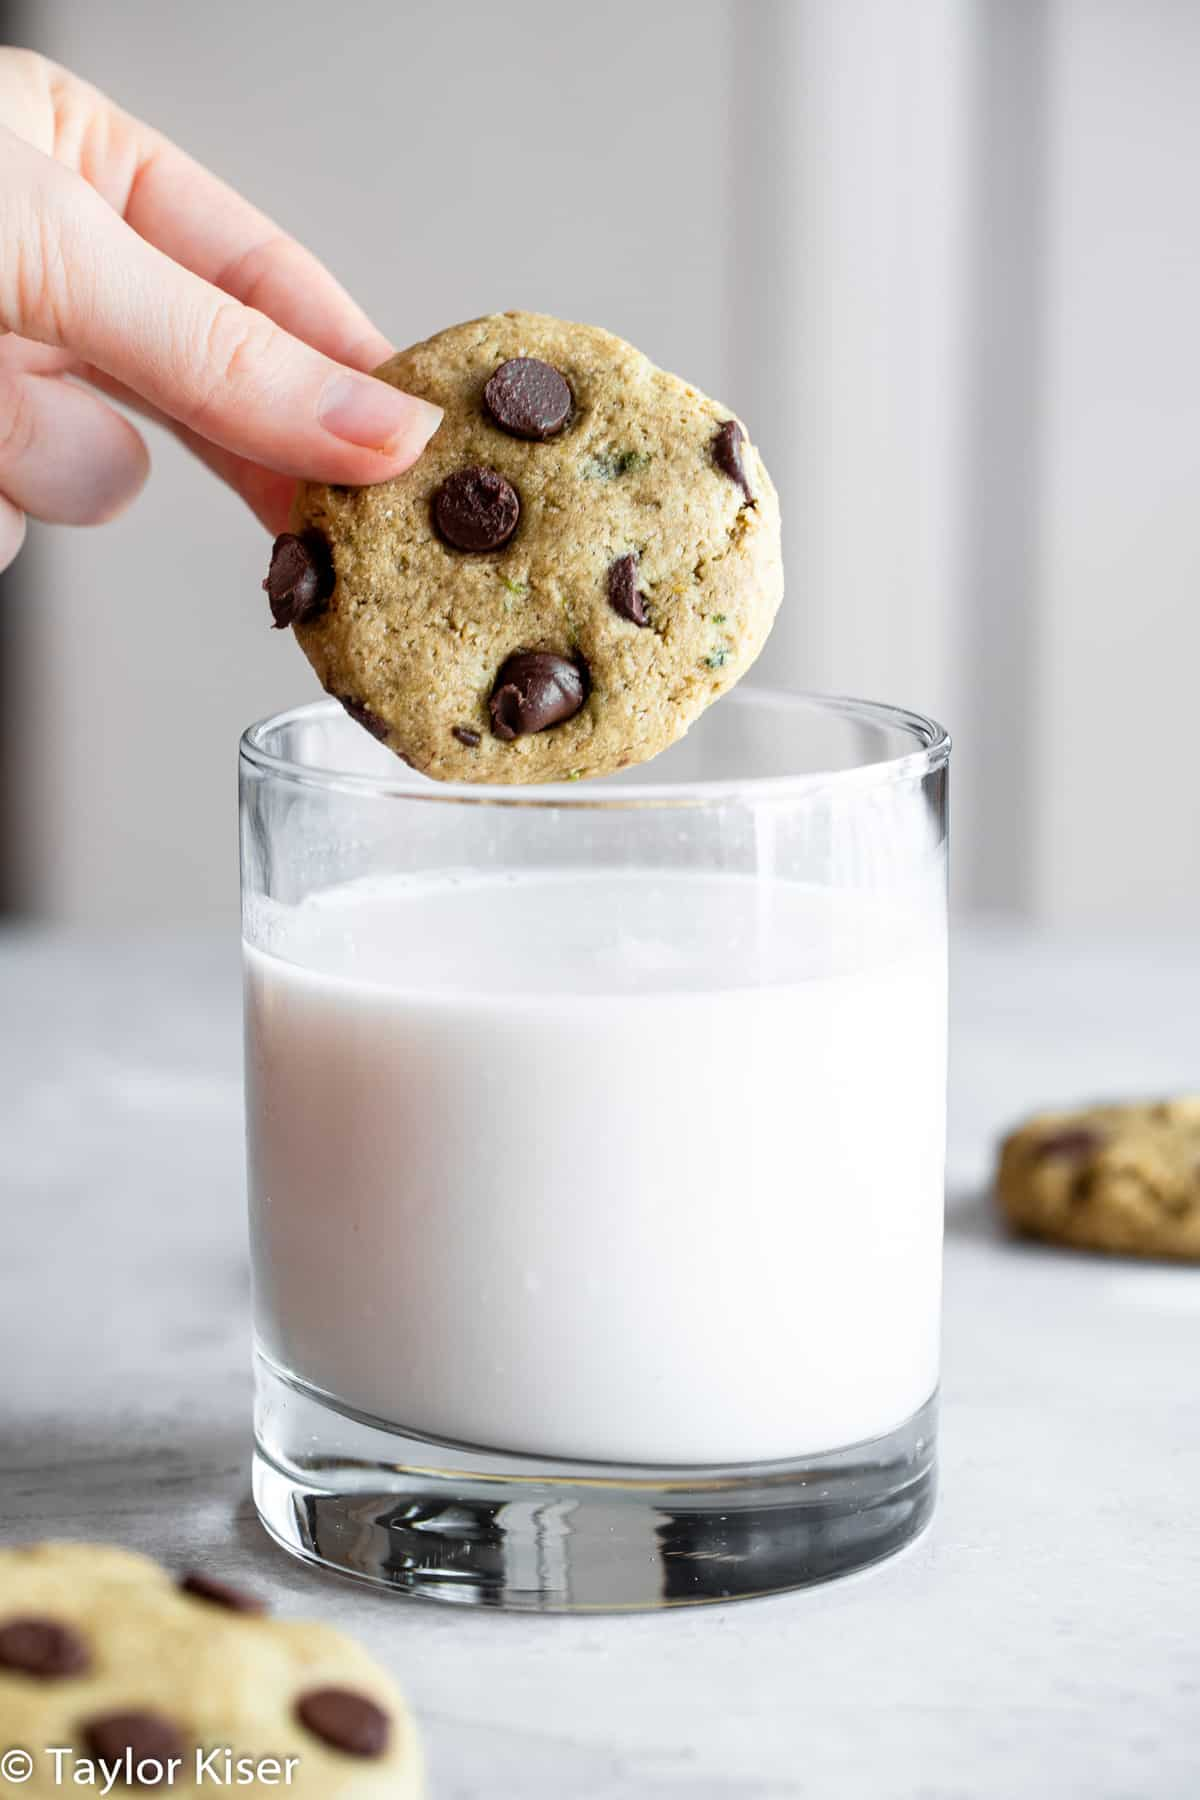 Healthy Chocolate Chip Cookie being dipped into a glass of milk